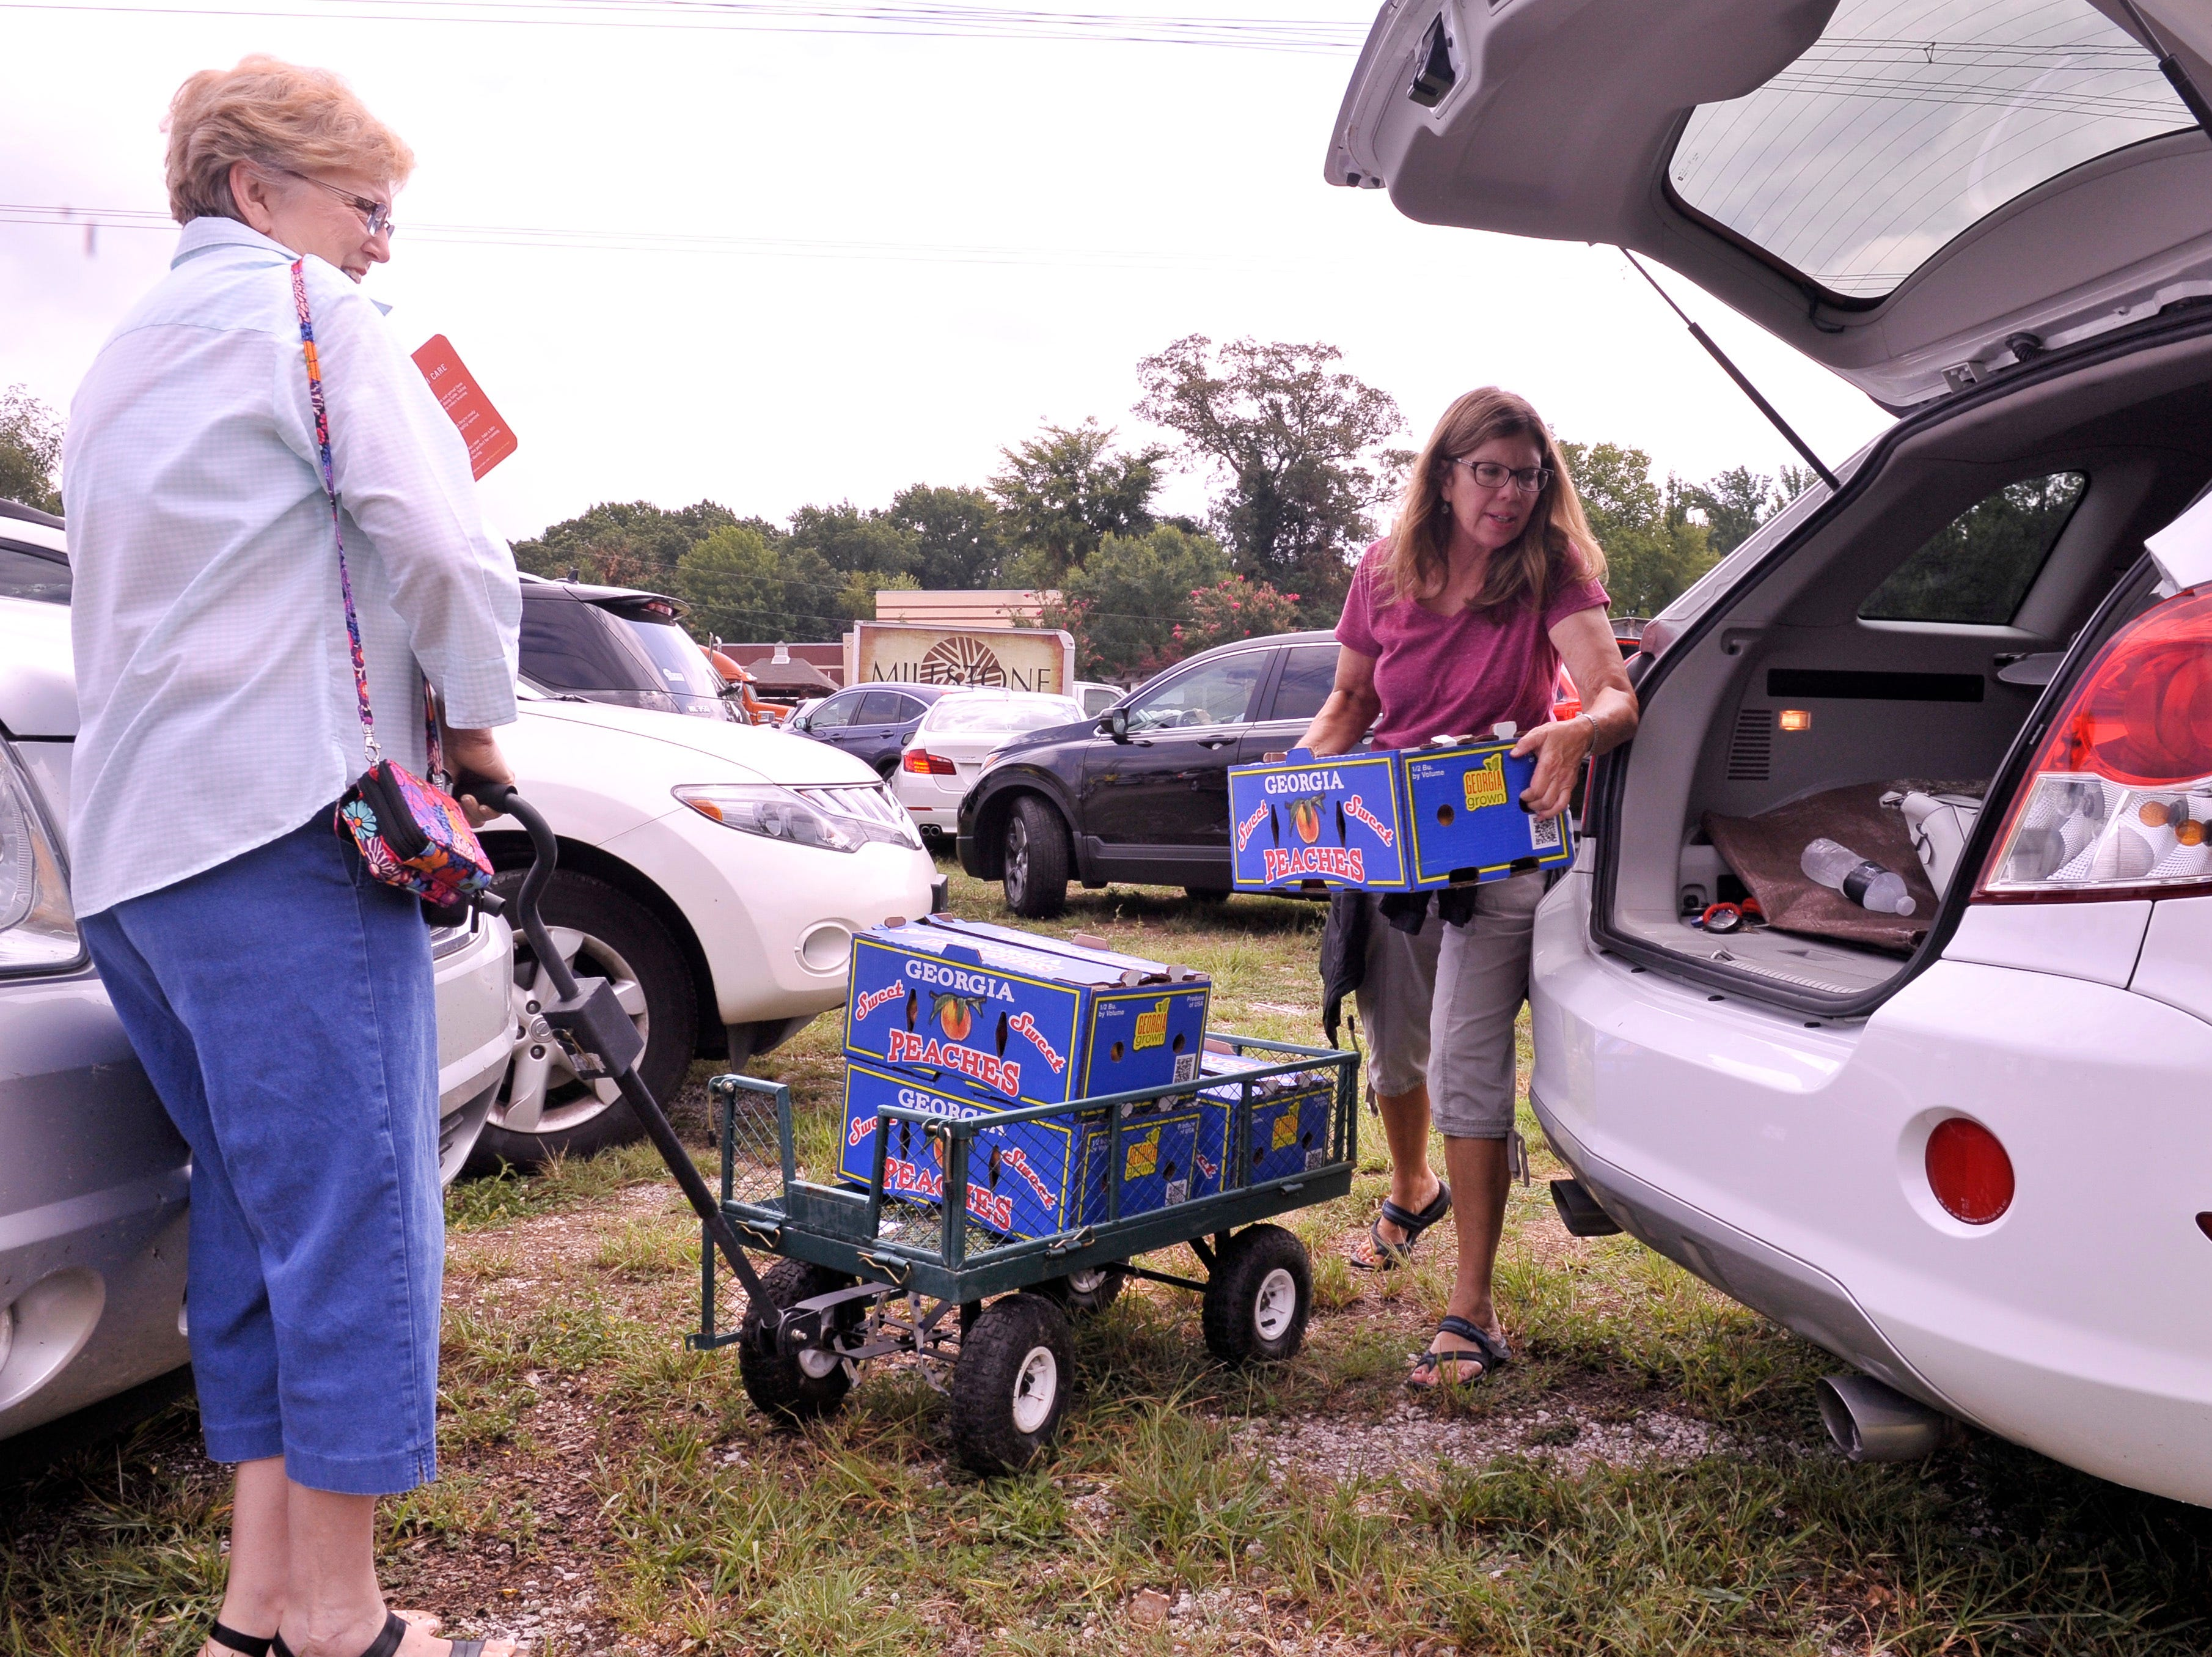 Judy Hill to the right watches as Cindy Matz loads peach's into her car after visiting The Peach Truck, which made a stop at Millstone Nursery on Popular Avenue on Wednesday.